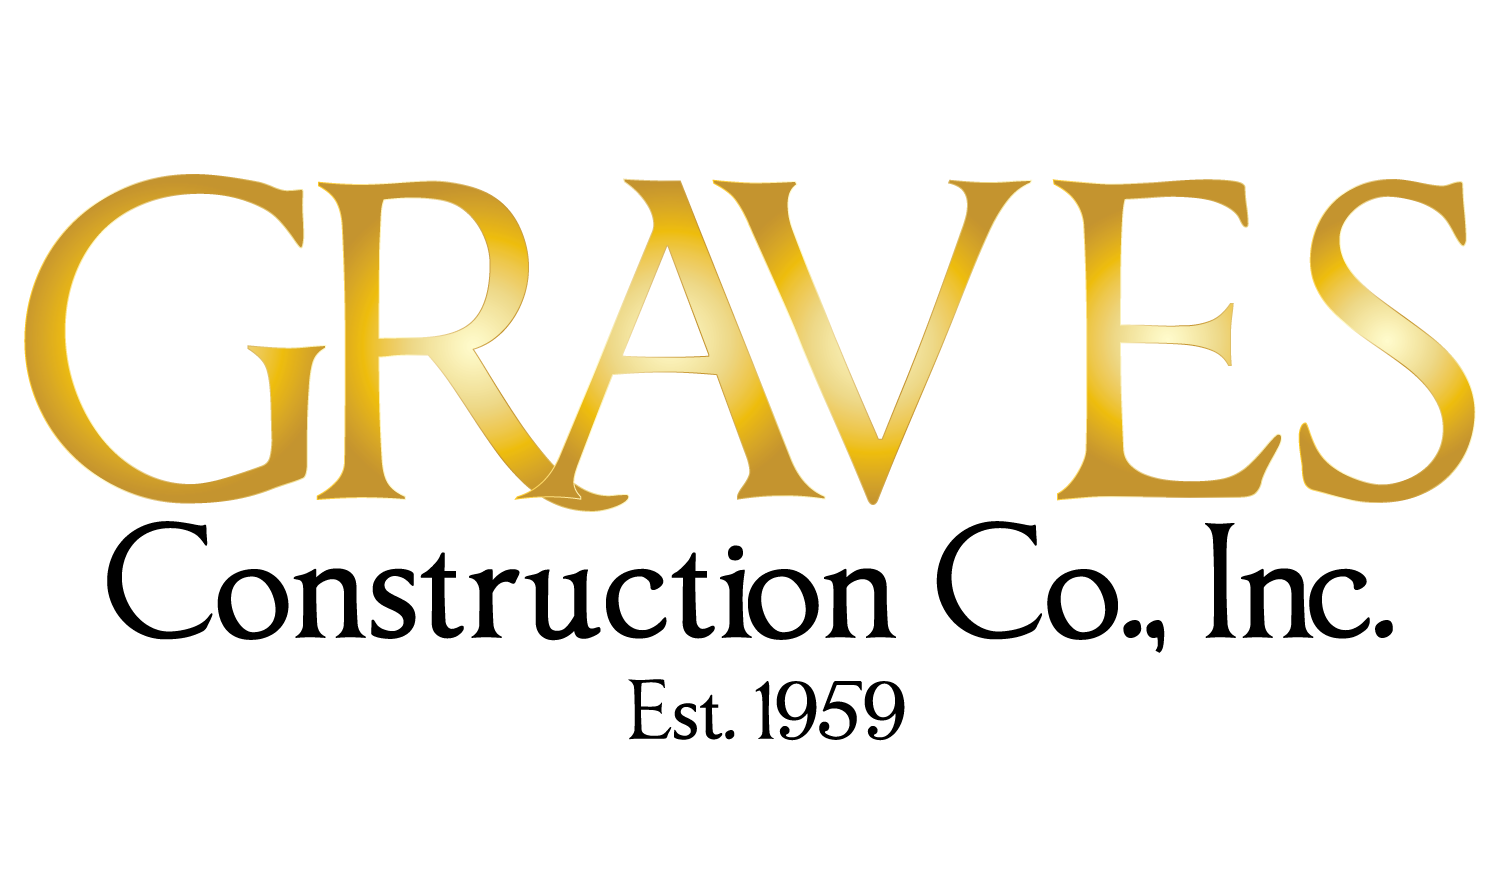 https://sclightning.com/wp-content/uploads/2018/07/Graves-Construction-Co-Inc..png